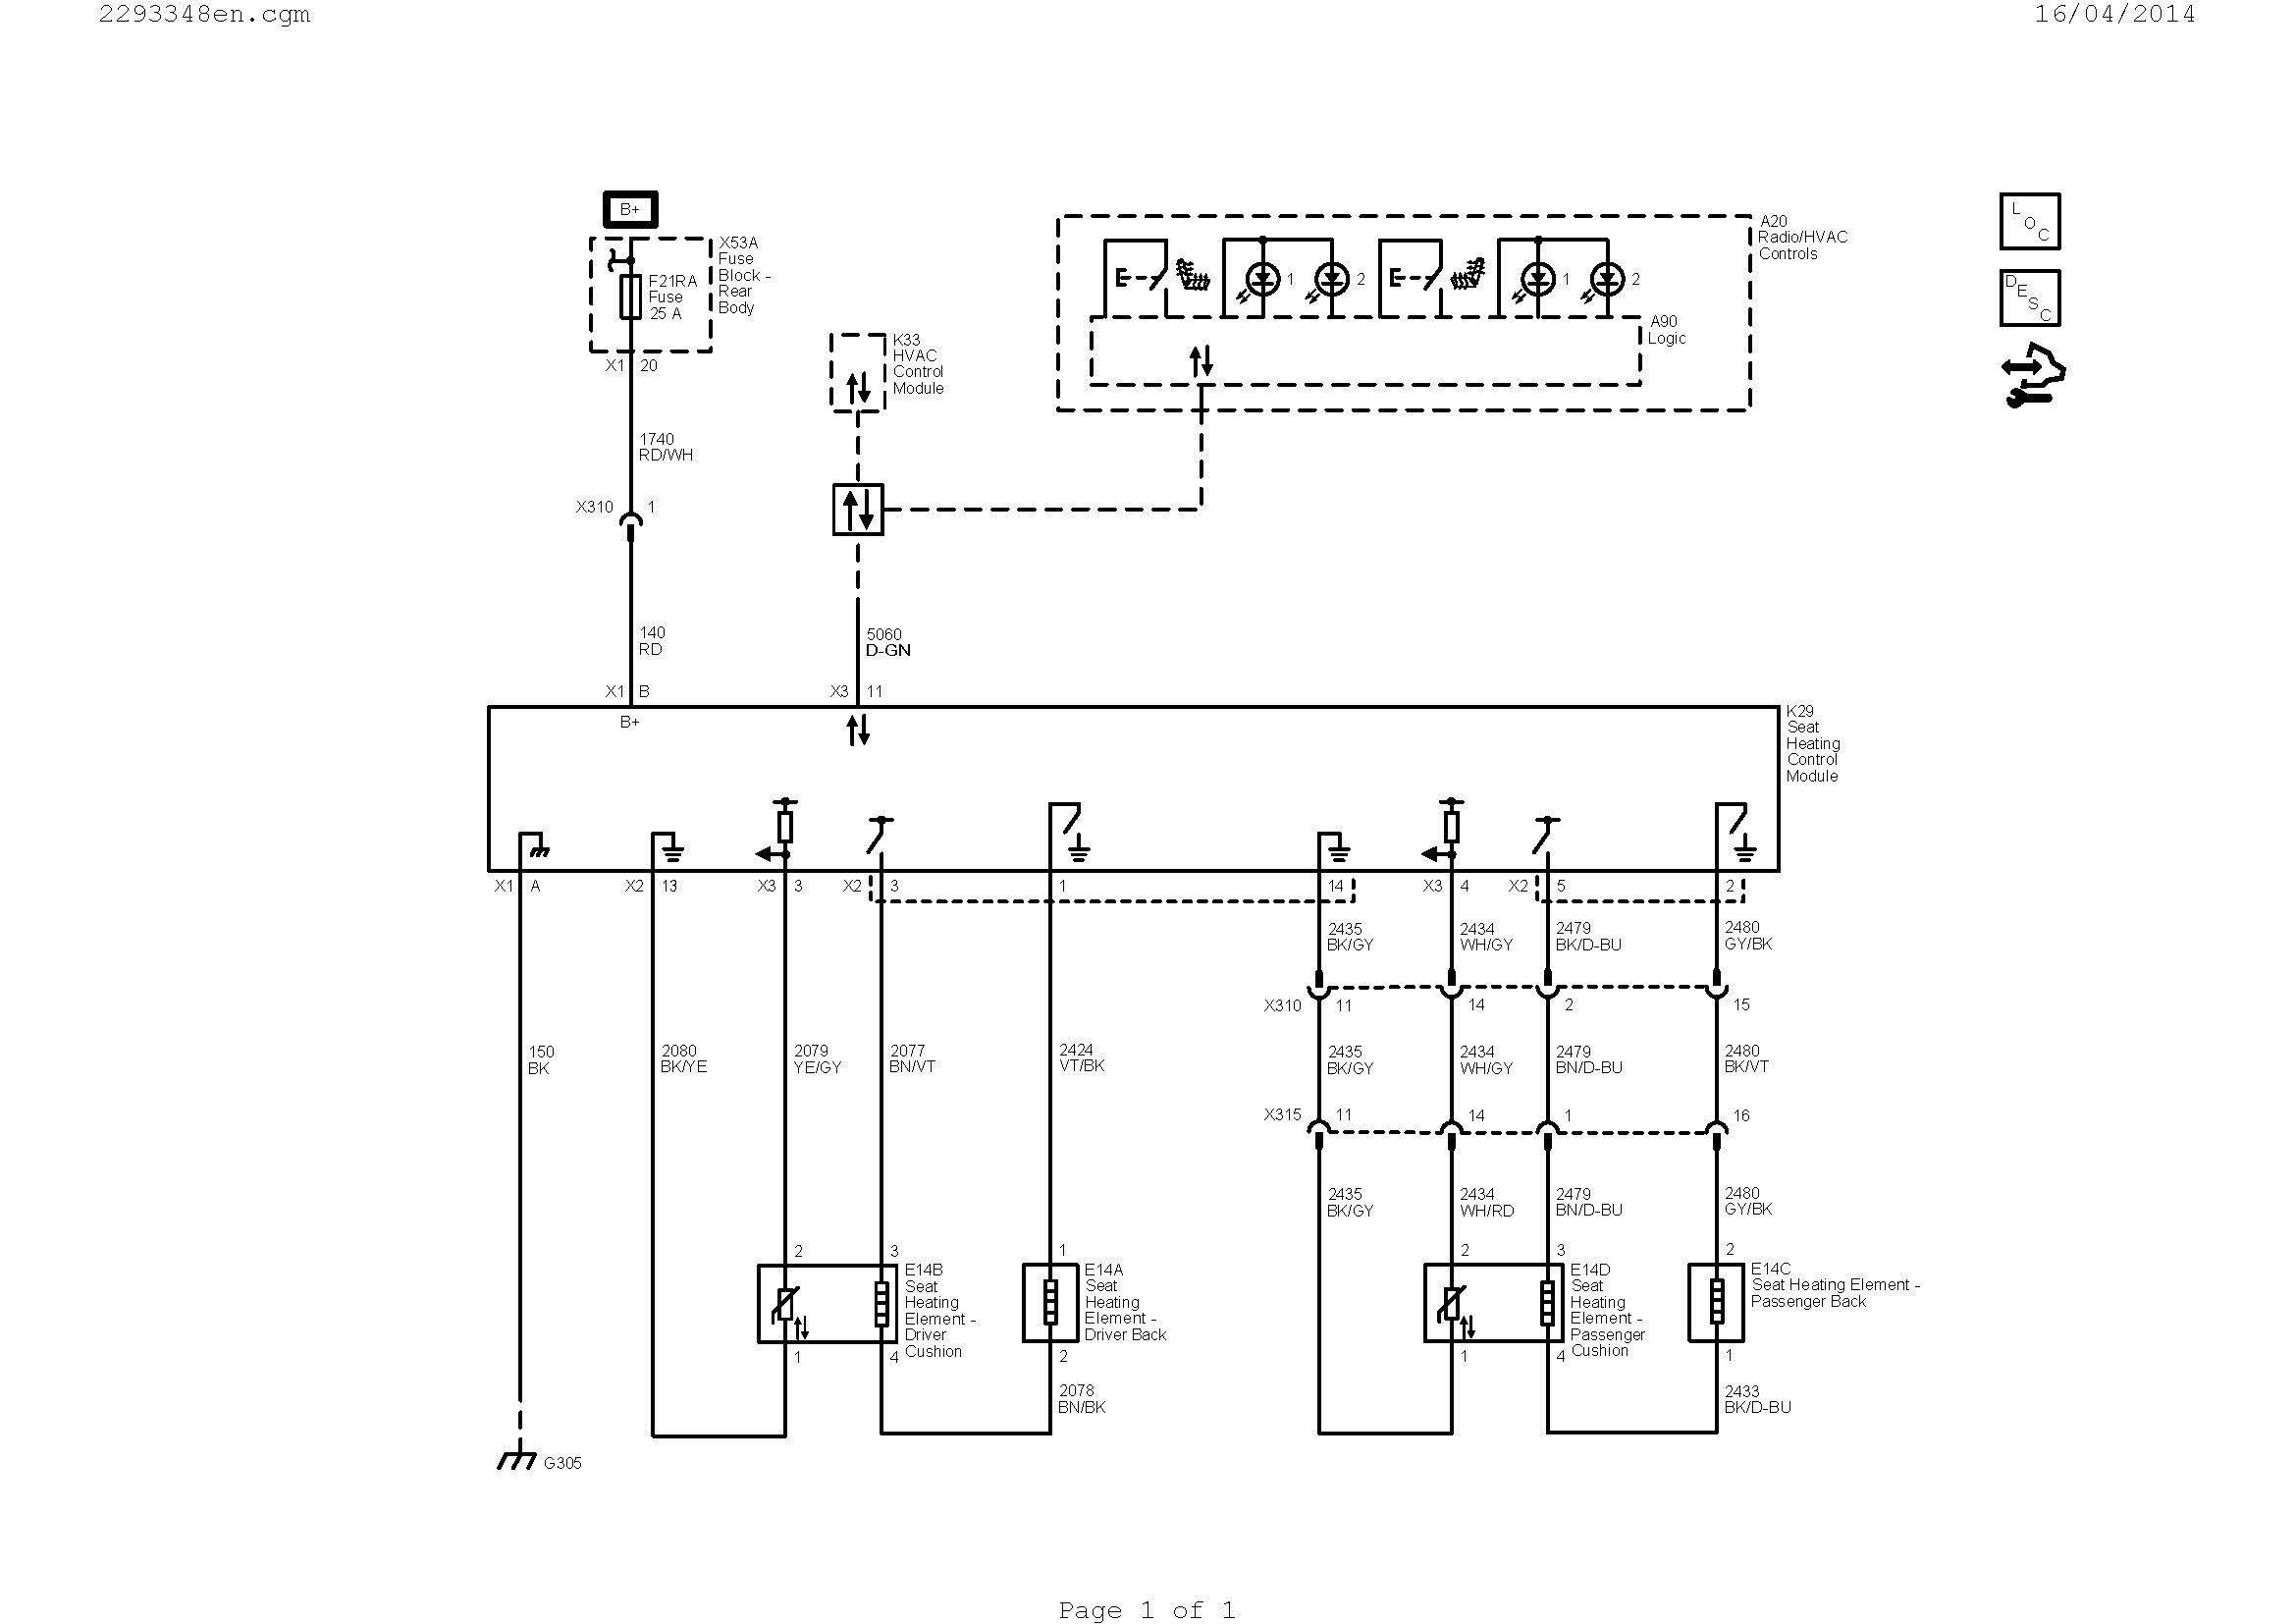 200 amp disconnect wiring diagram Download-Wiring Diagram for A Relay Switch Save Wiring Diagram Ac Valid Hvac Hvac Wiring Diagram 13-h